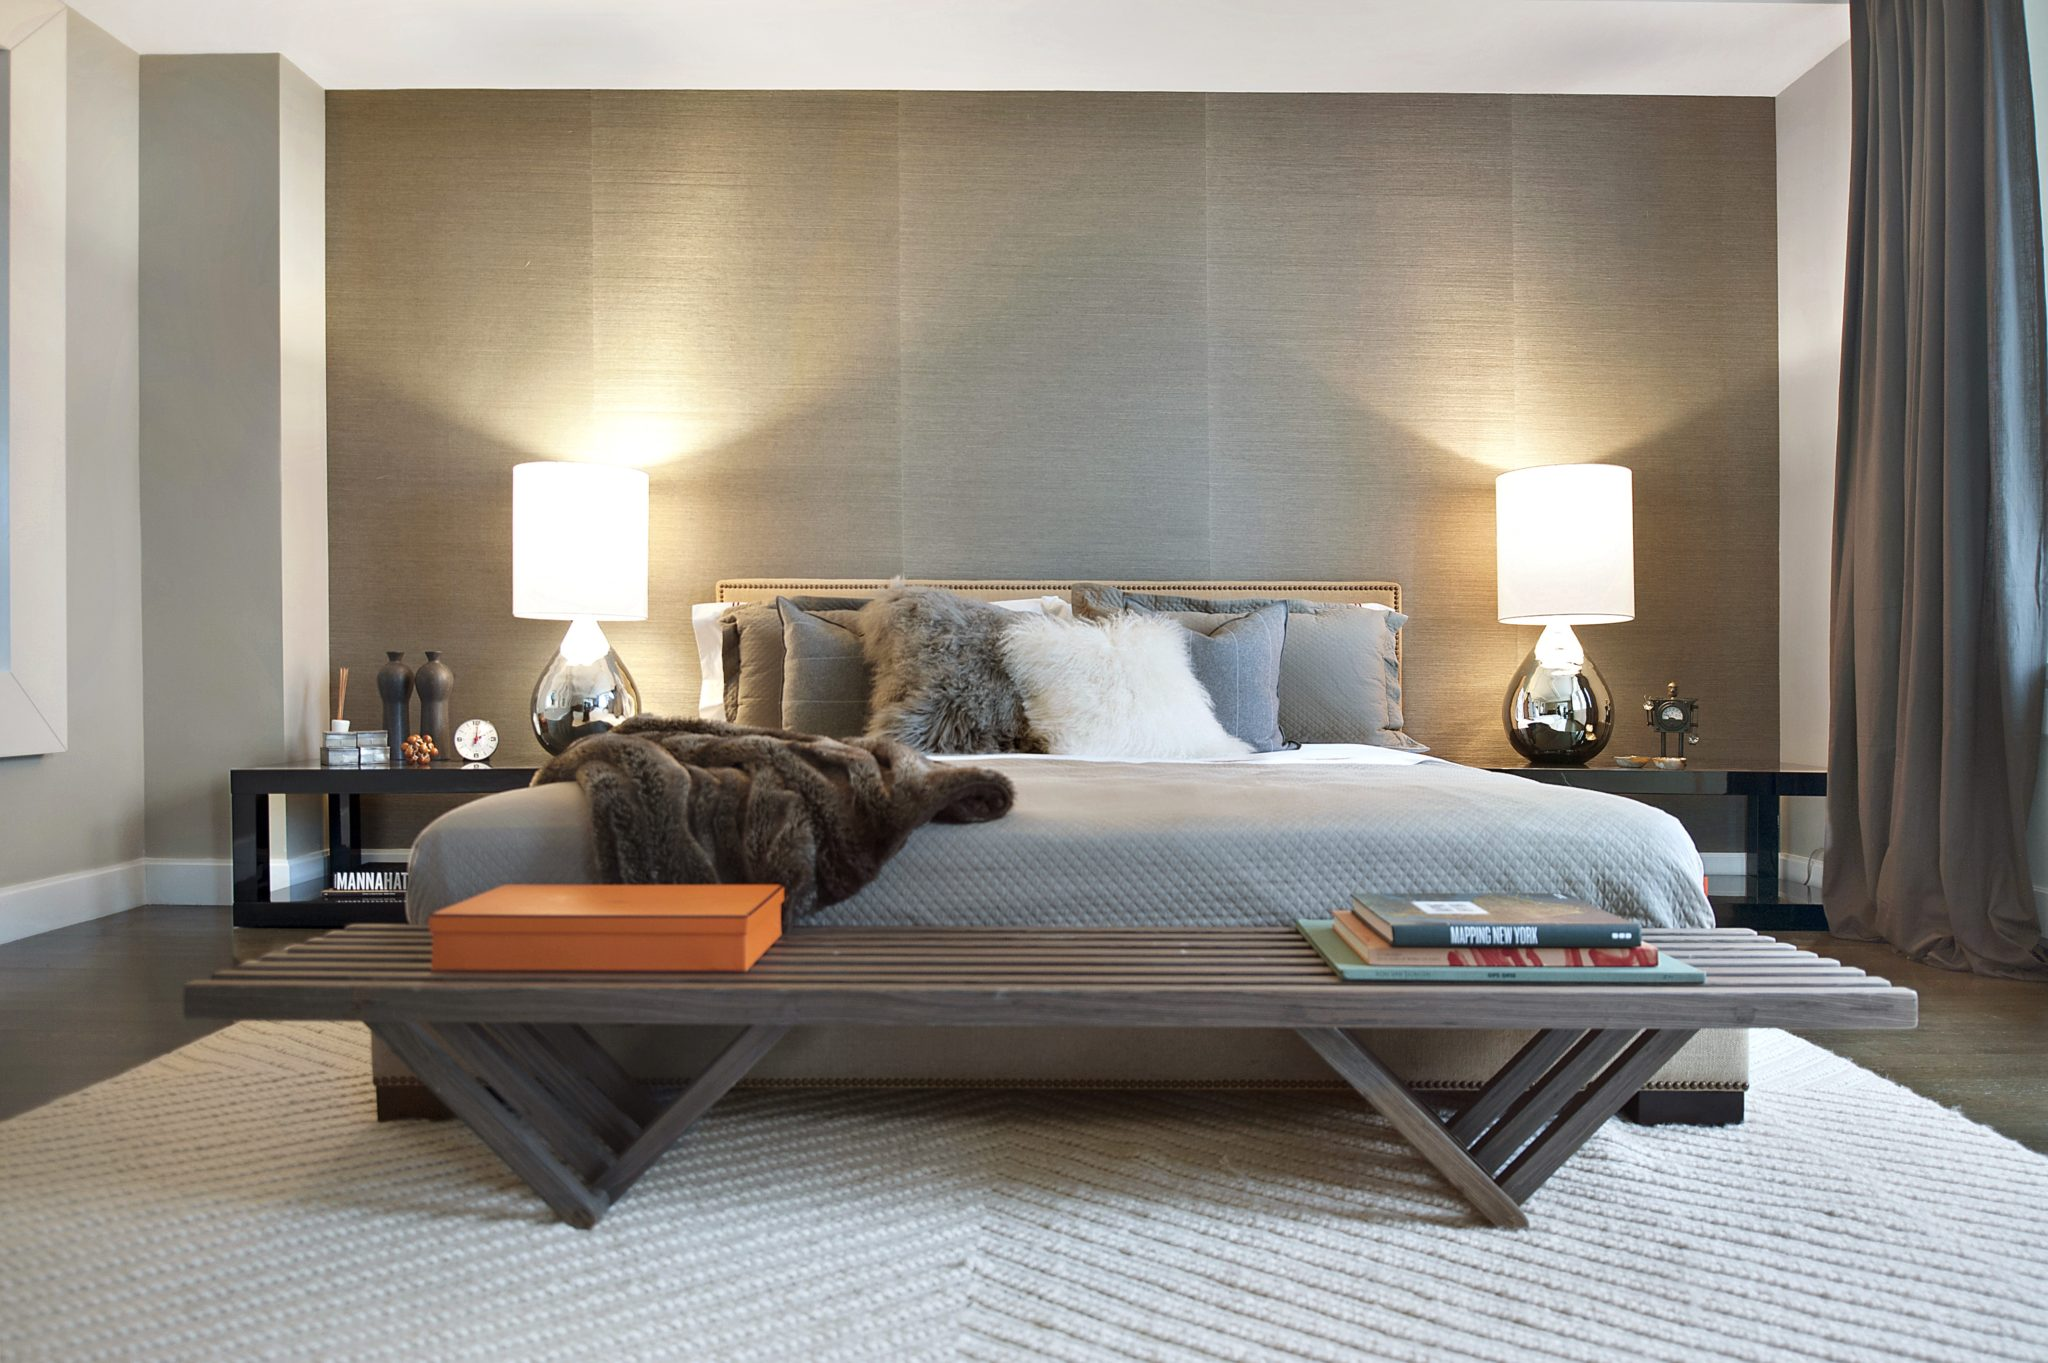 Master bedroom in a Central Park residenceby Lo Chen Design